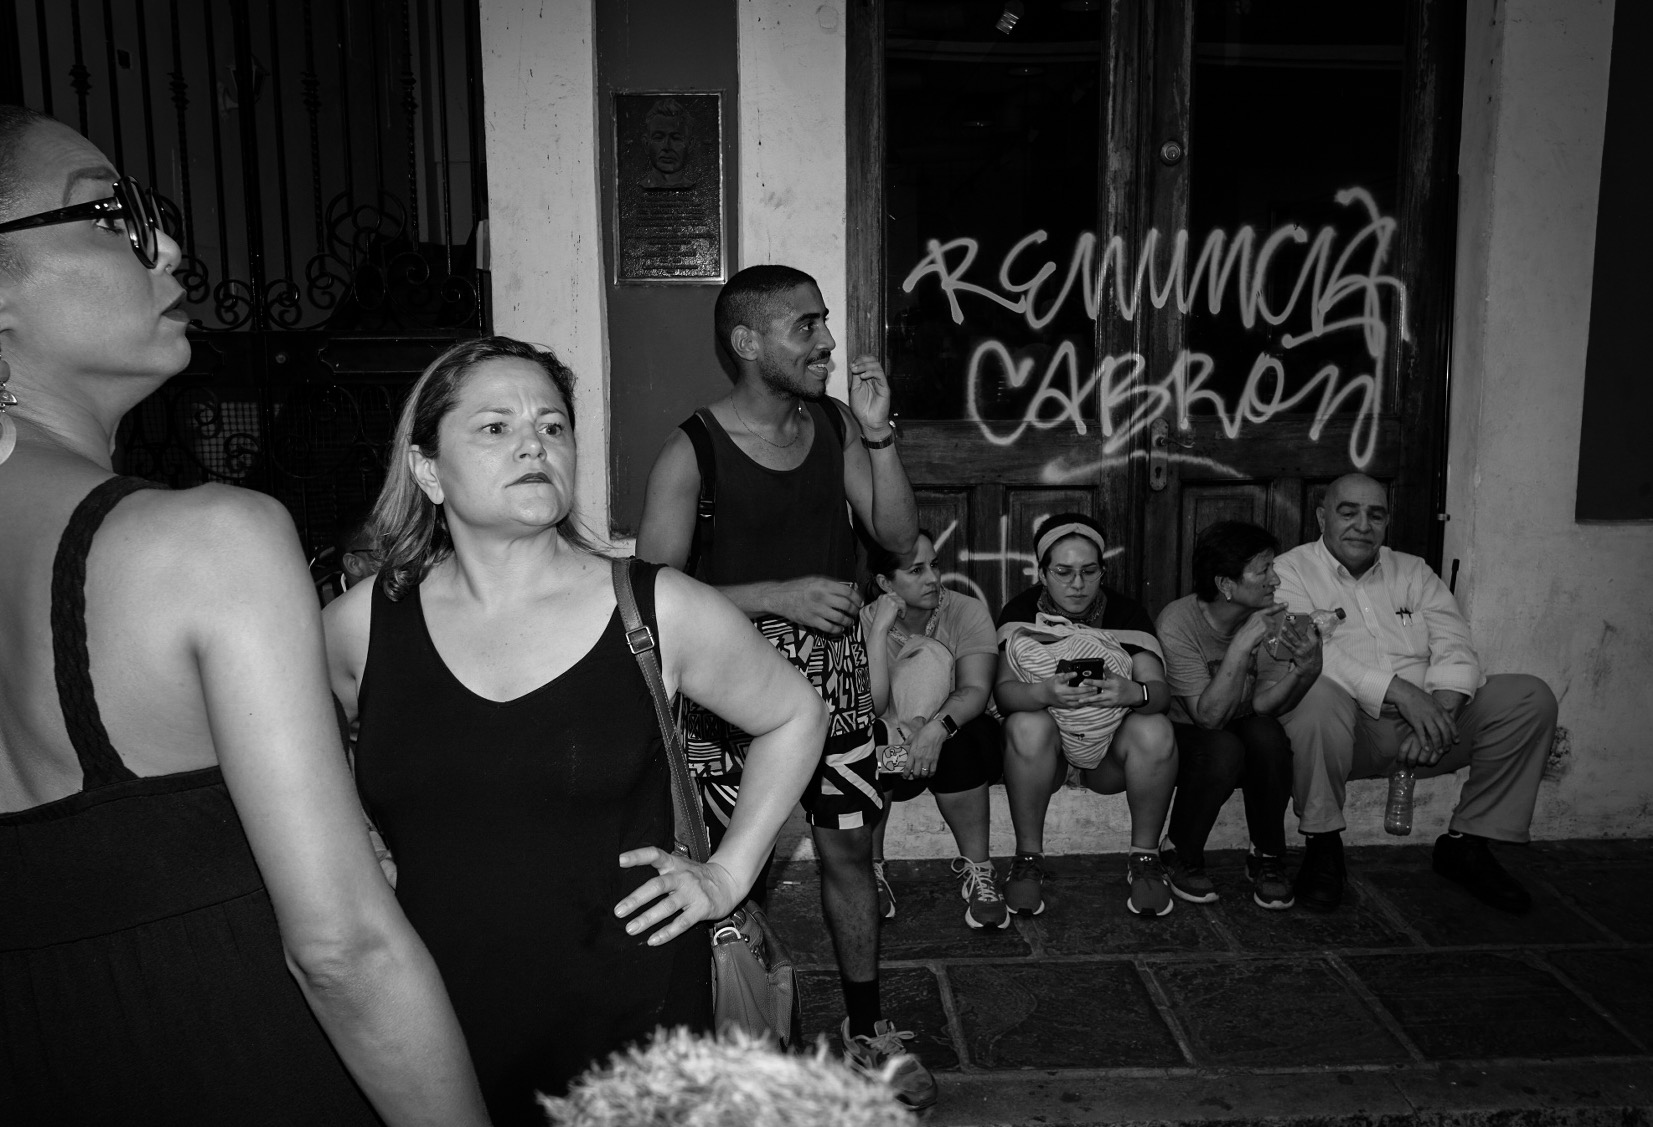 Melissa Mark Viverito whom Governor Ricardo Rossello called a whore in a chat with government officials among others. Protest against the Governor of Puerto Rico demanding his resignation. 7/15/19 San Juan, PR.